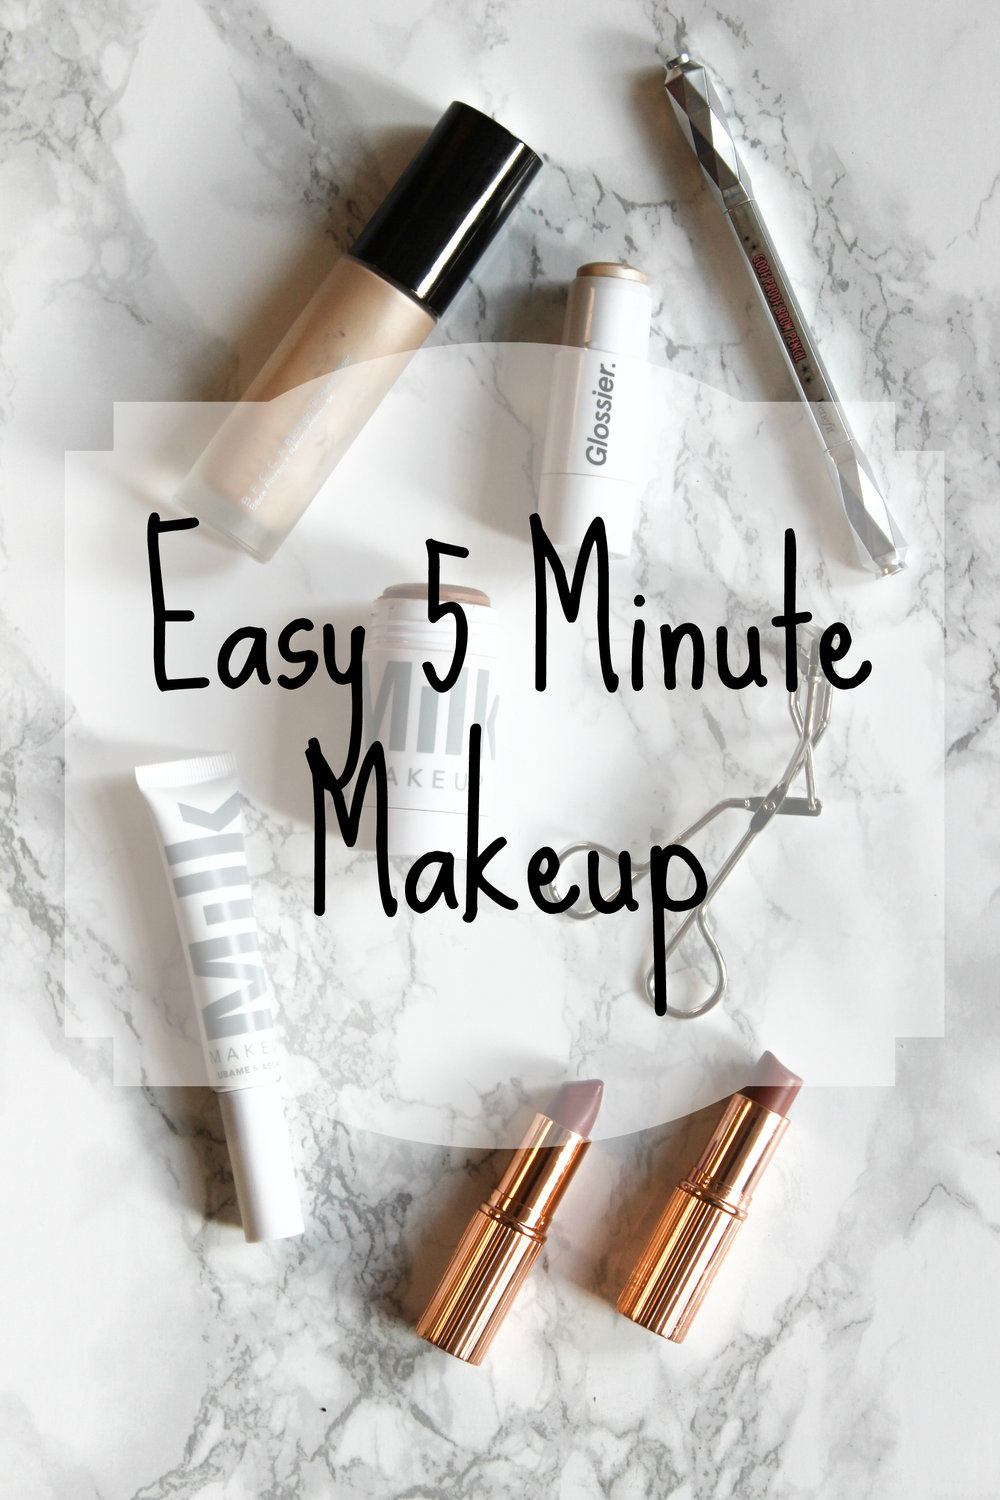 Easy fast simple 5 Minute everyday makeup